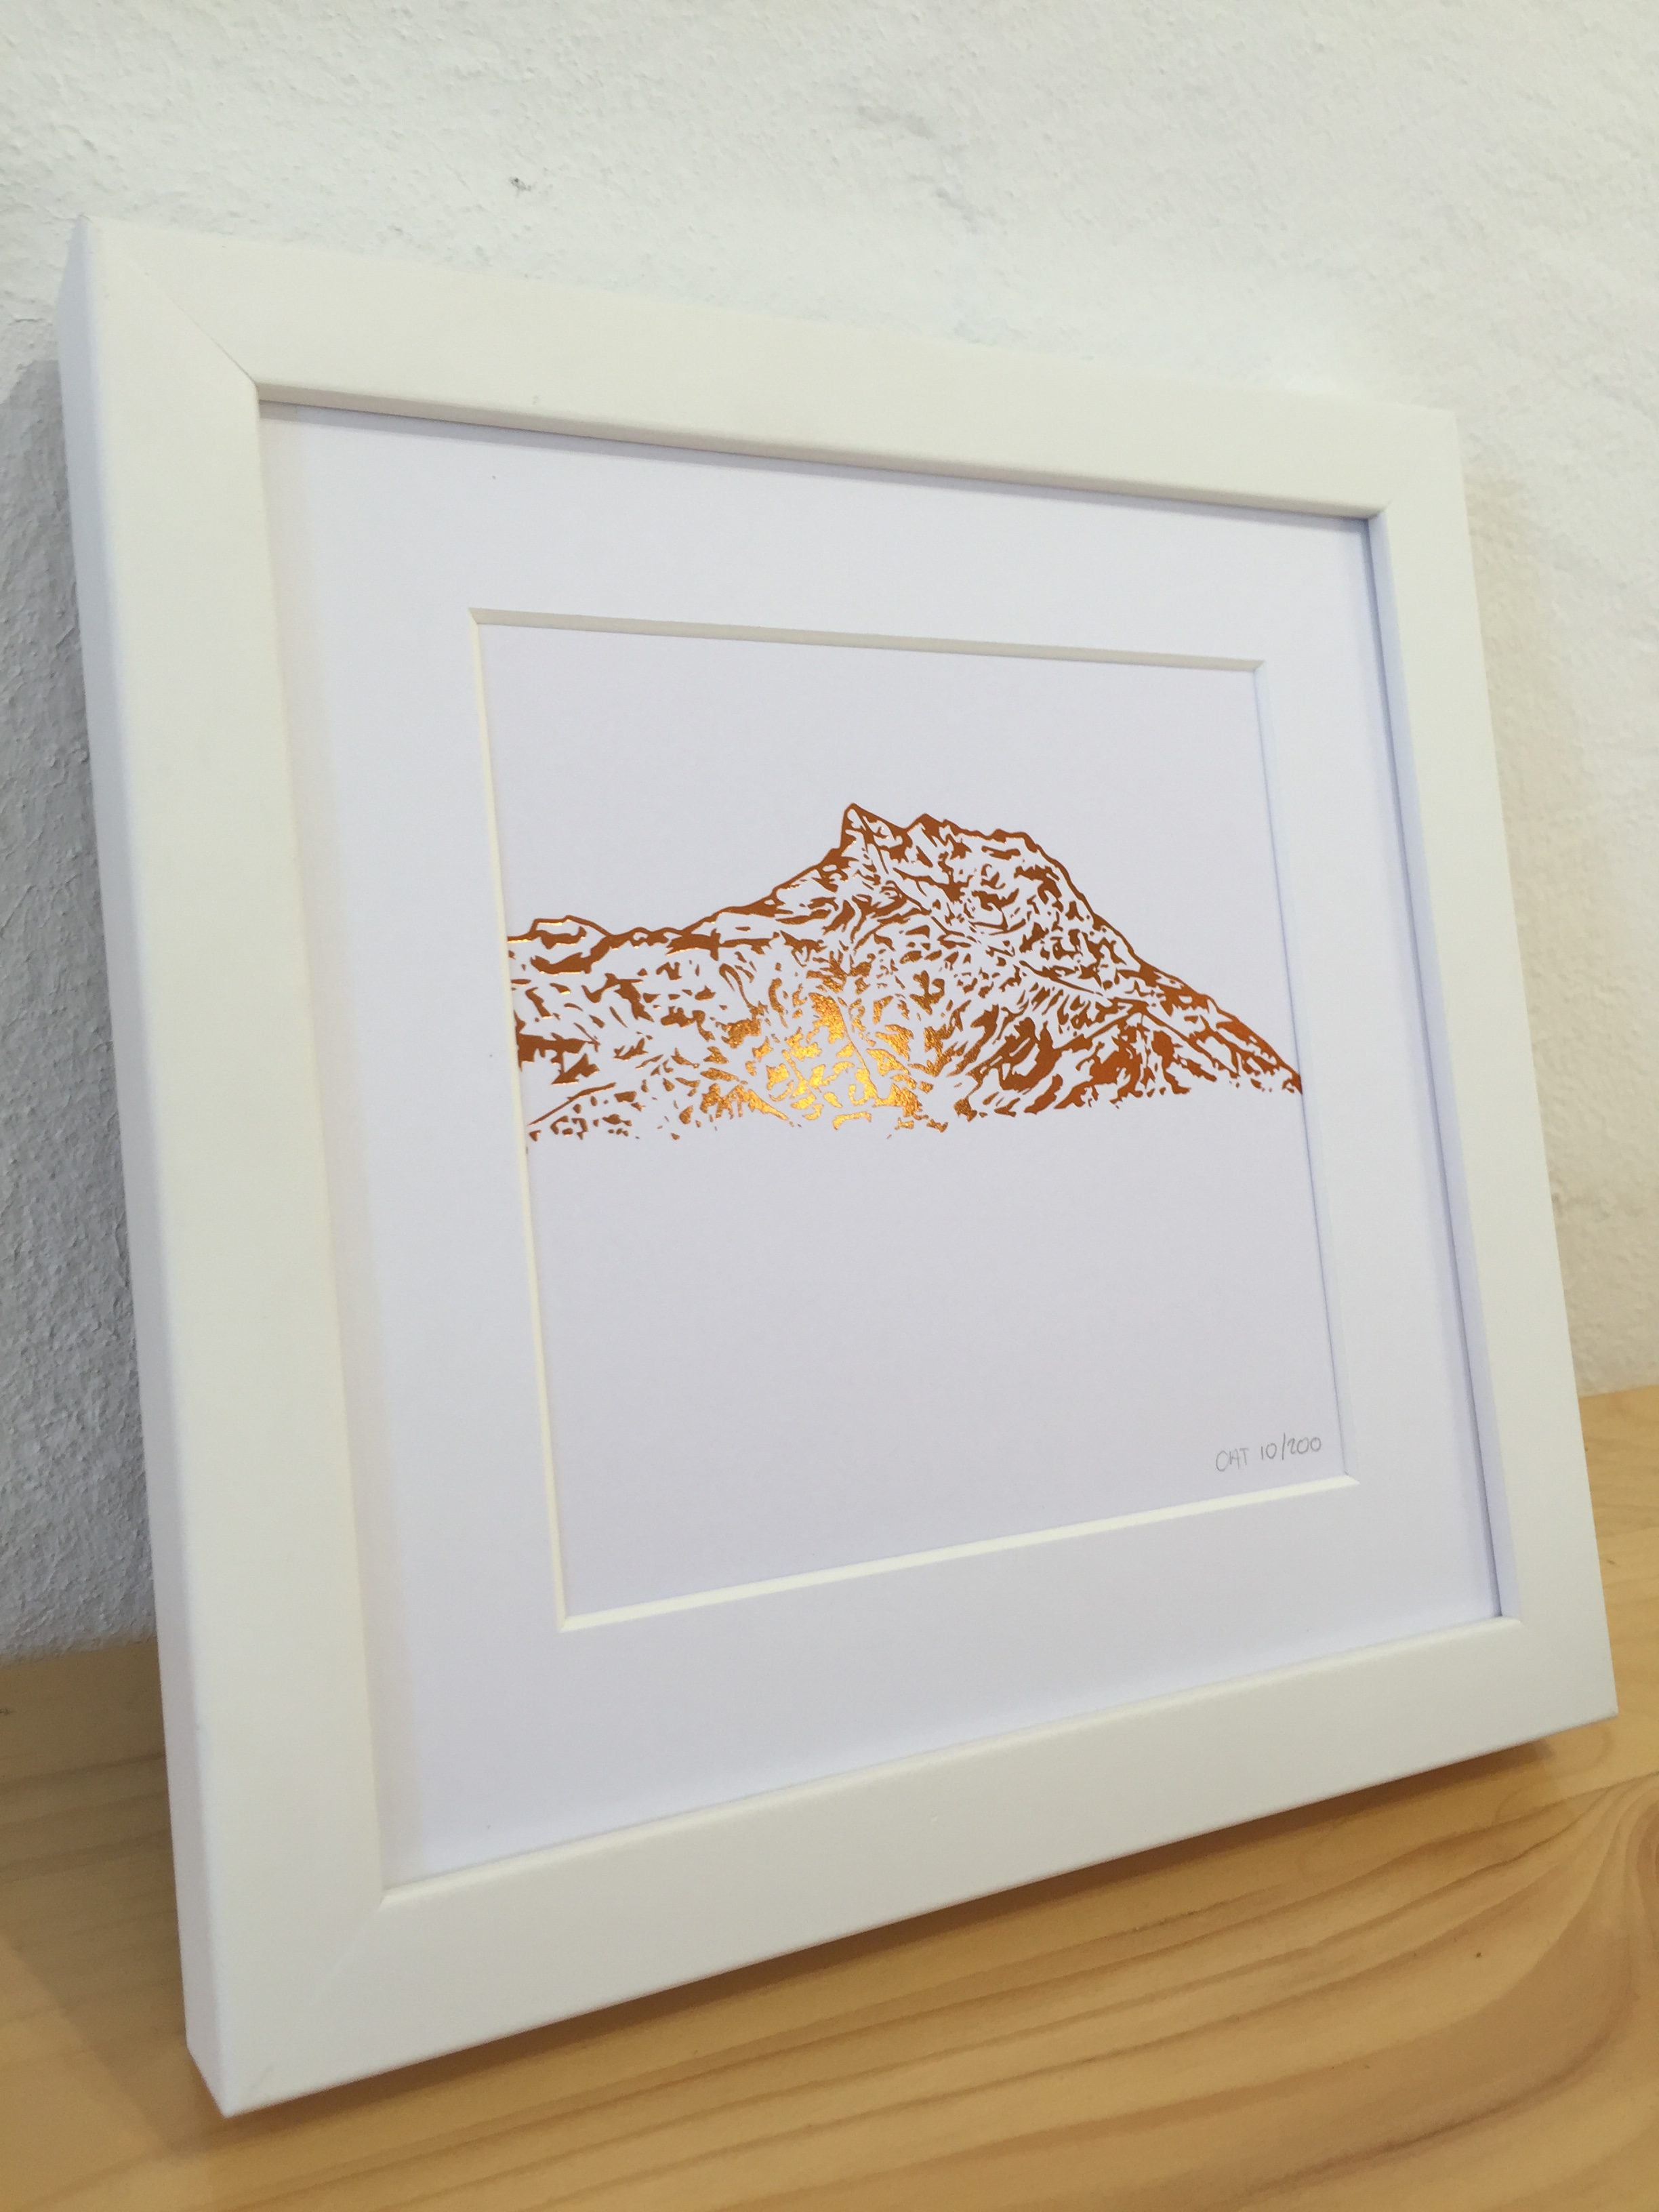 Limited Edition Print available